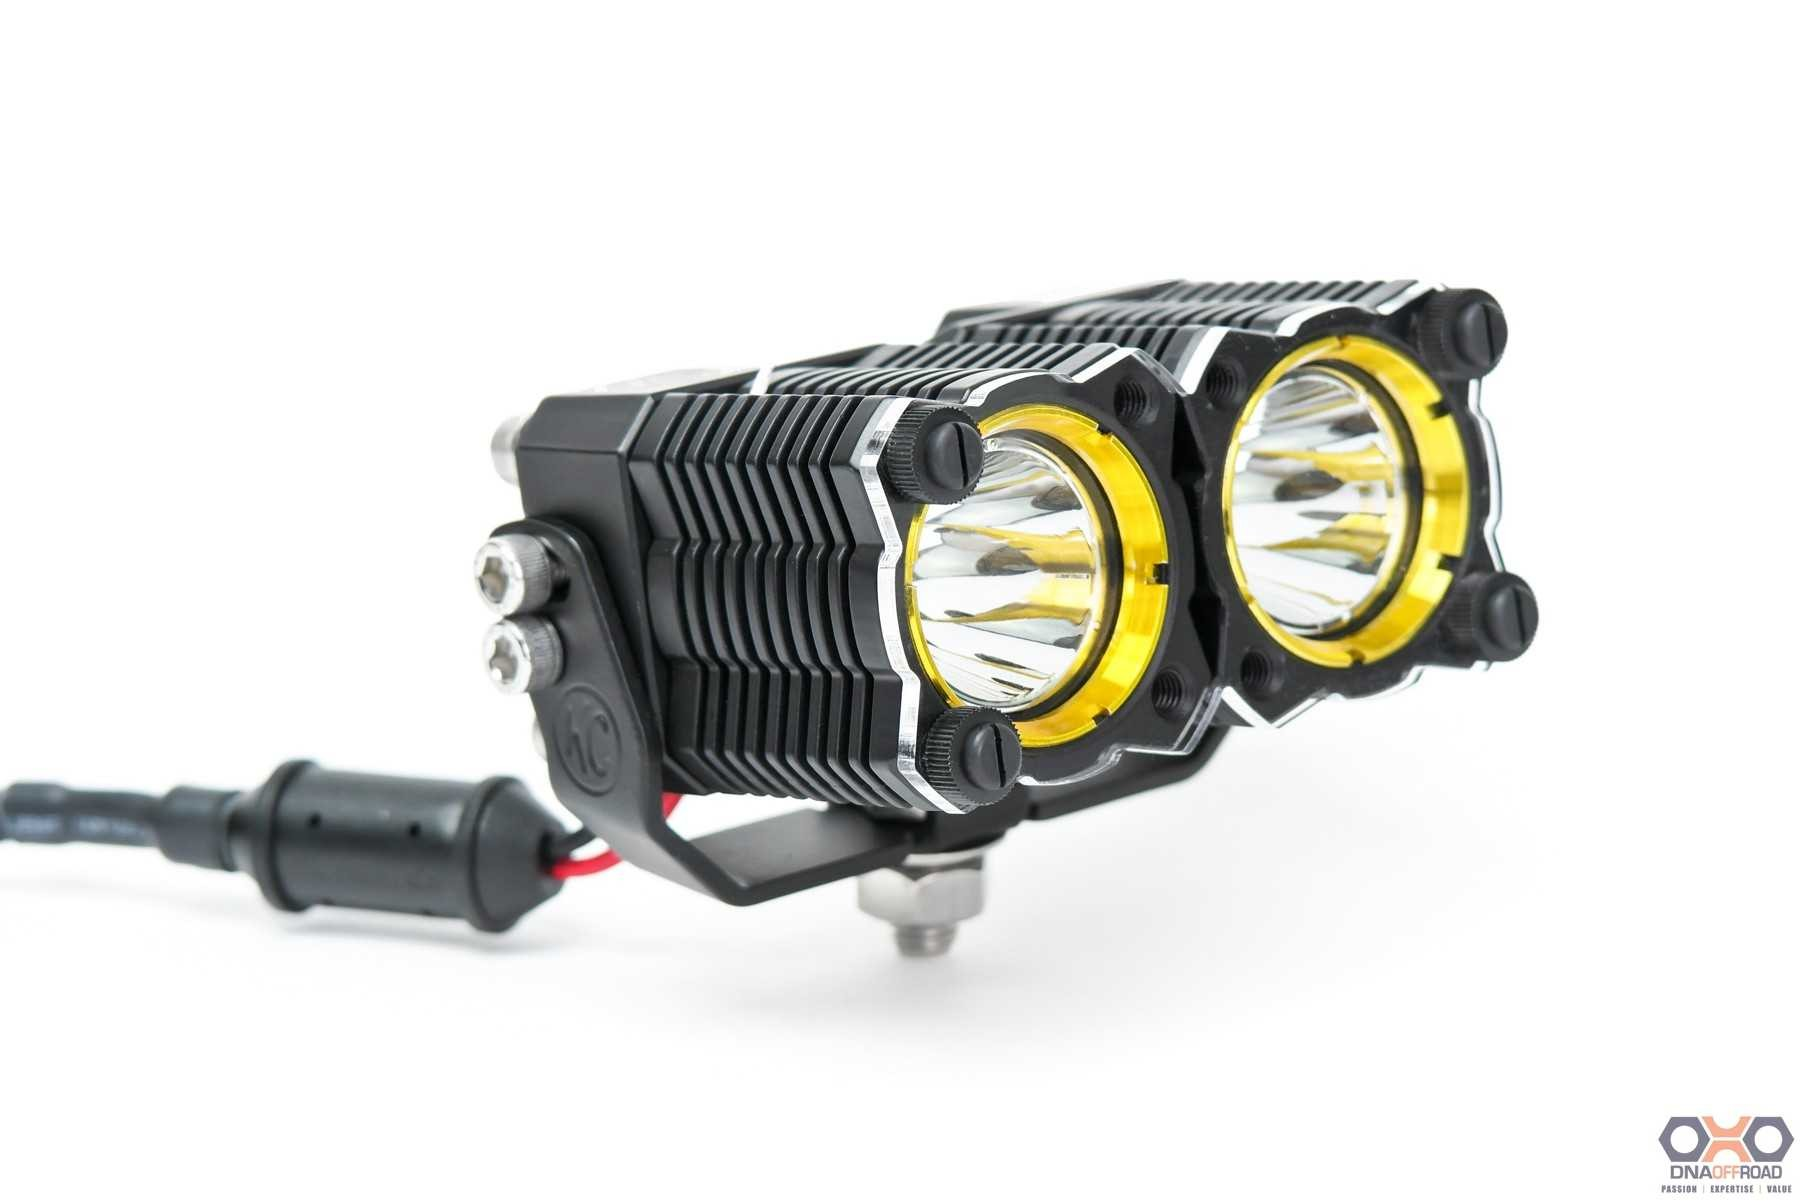 KC HiLiTES FLEX shield dual light